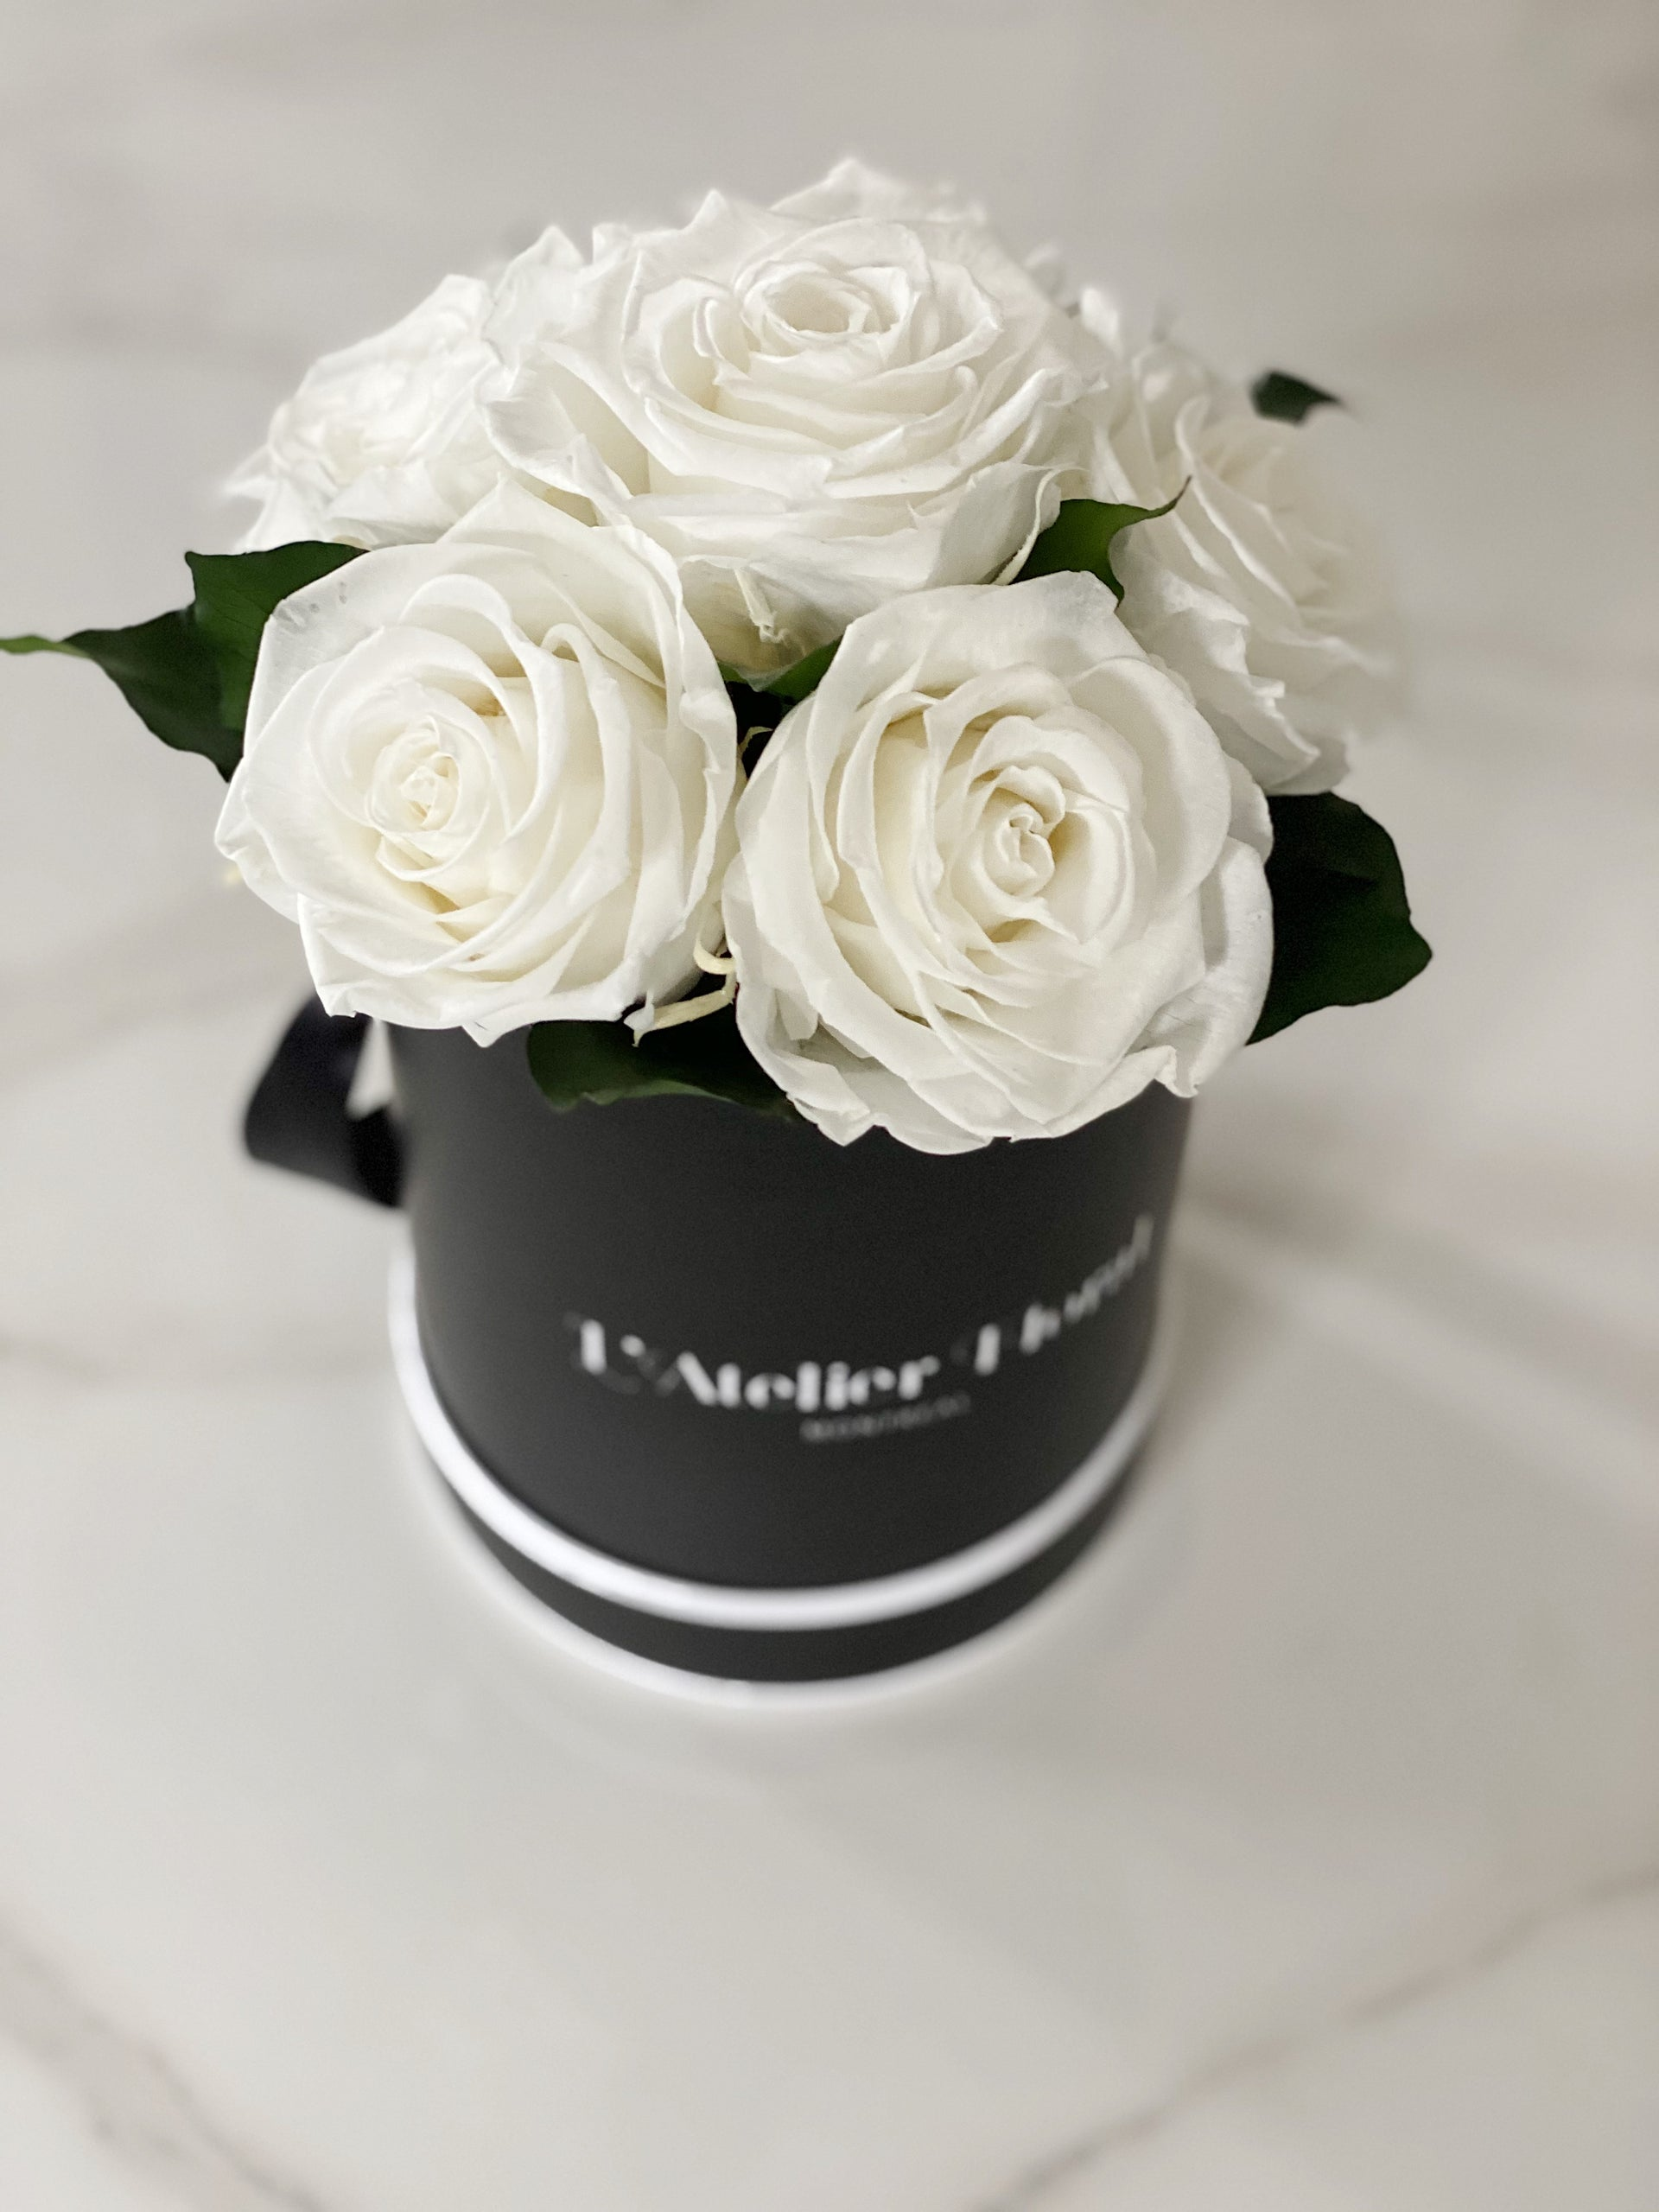 Mini Bouquet of Eternal Roses in White (Black Box)